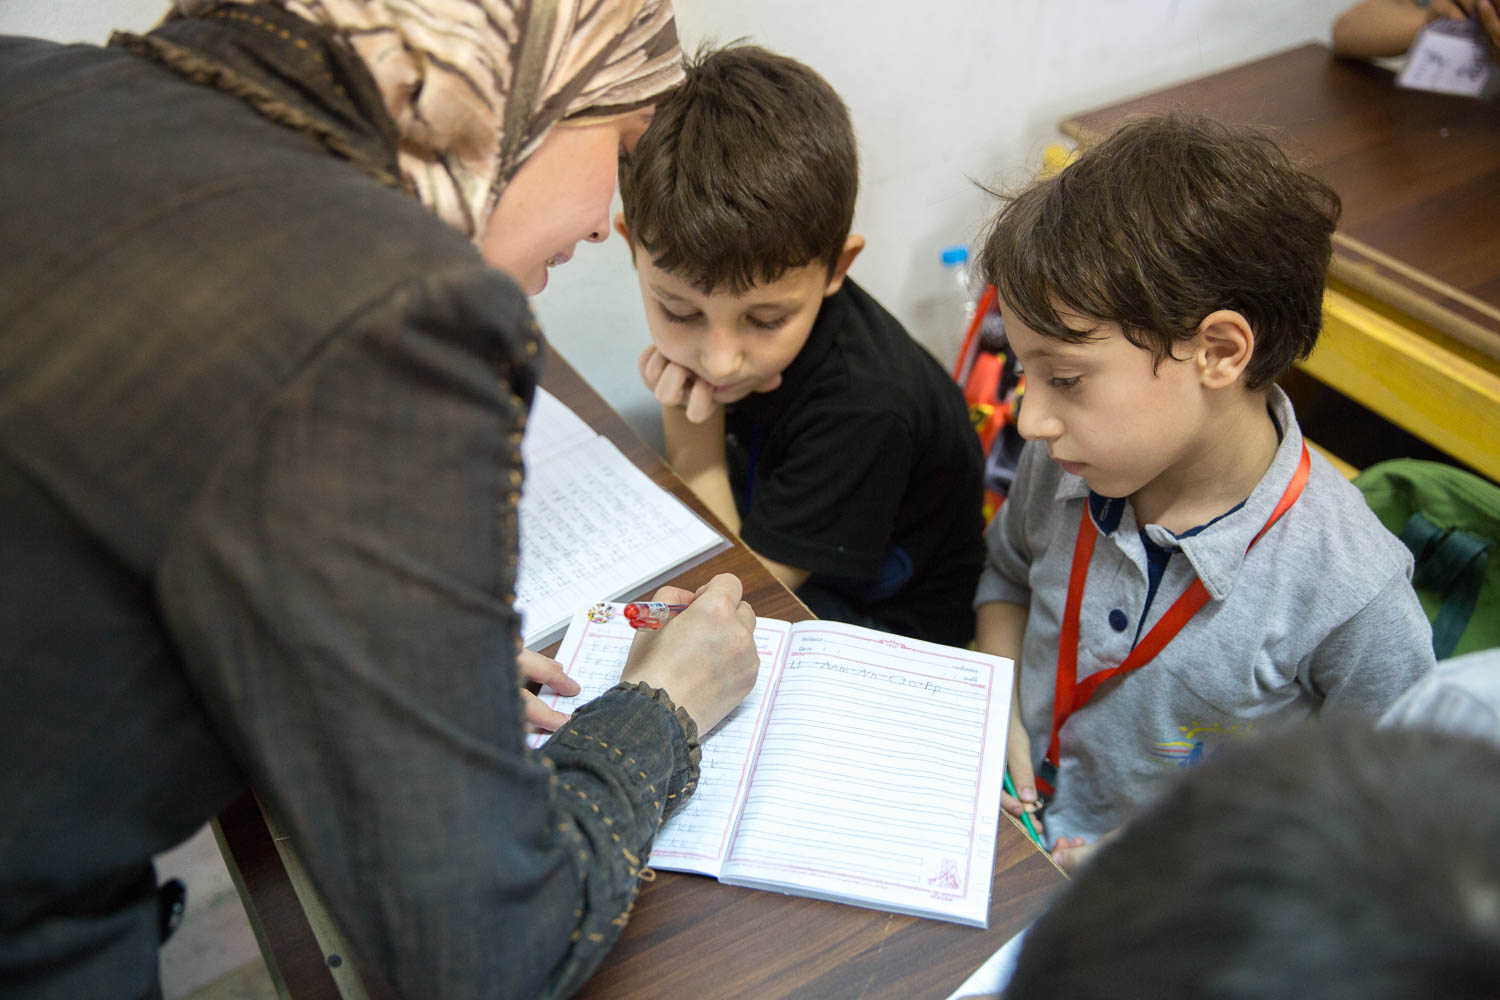 A teacher helps children write the alphabet during one of their first English lessons at the community centre run by NGO Ansan and Plan International. Most of the teachers at the community centre are Syrian refugees themselves.